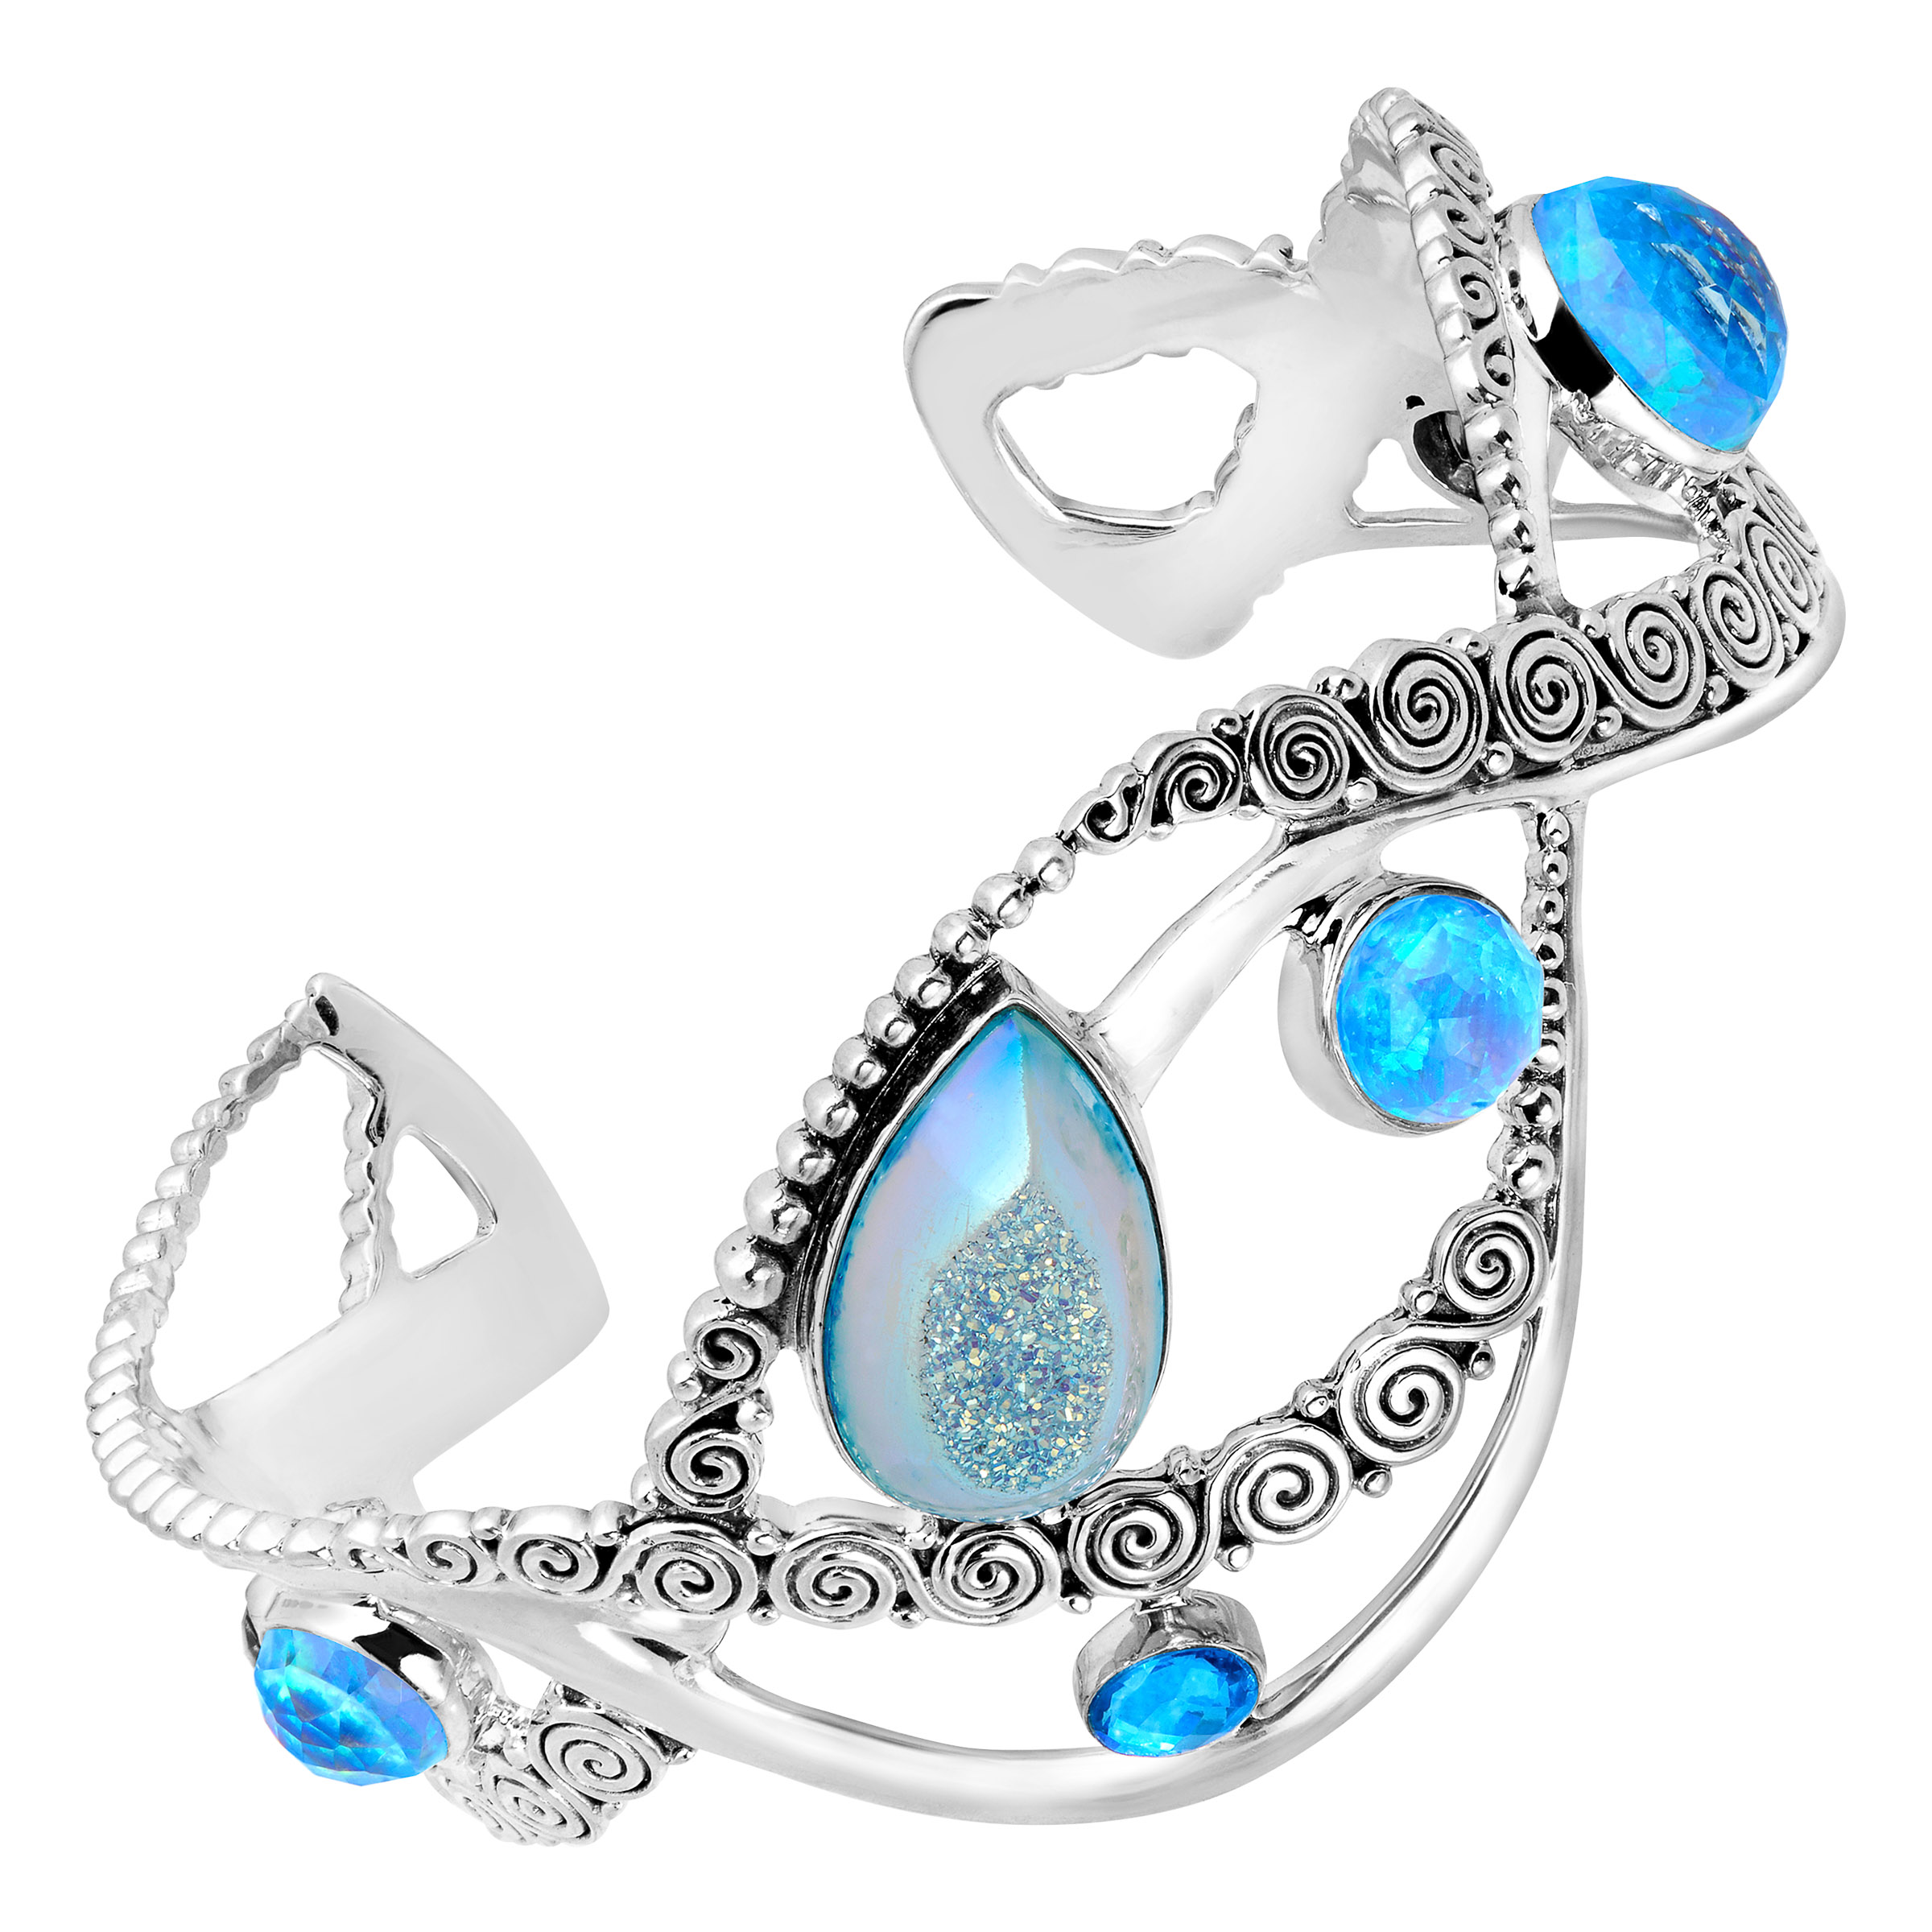 Sajen Natural Pariba Druzy & Blue Opal Doublet Cuff Bracelet in Sterling Silver by Richline Group